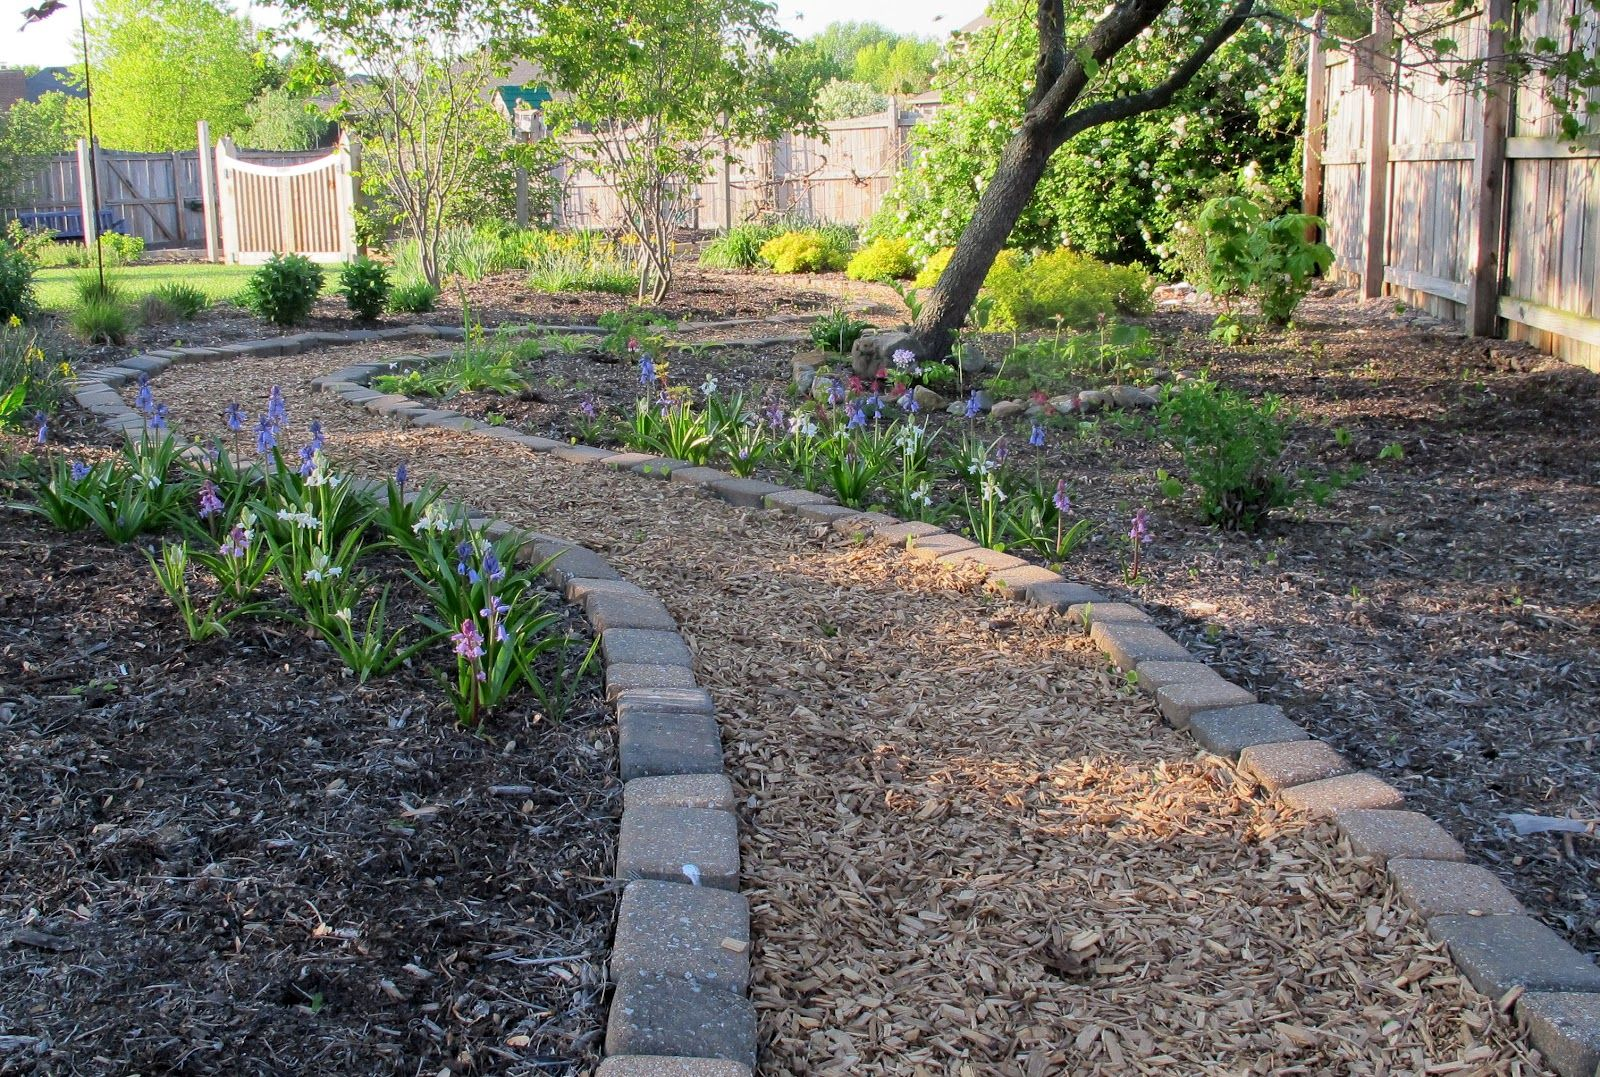 Merveilleux Cedar Mulch Path Kept Tidy With A Border Of Pavers. Nice!